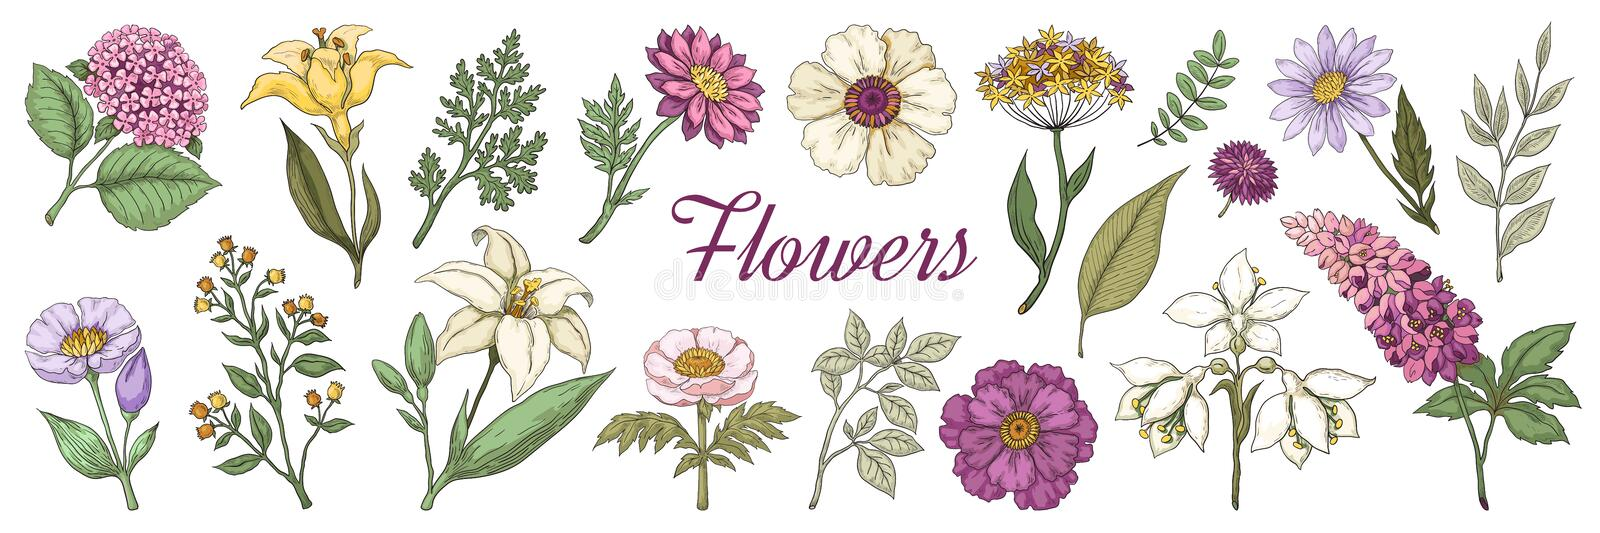 Hand drawn flowers. Floral vintage bouquet, garden flower set for posters and wedding cards. Vector doodle nature vector illustration